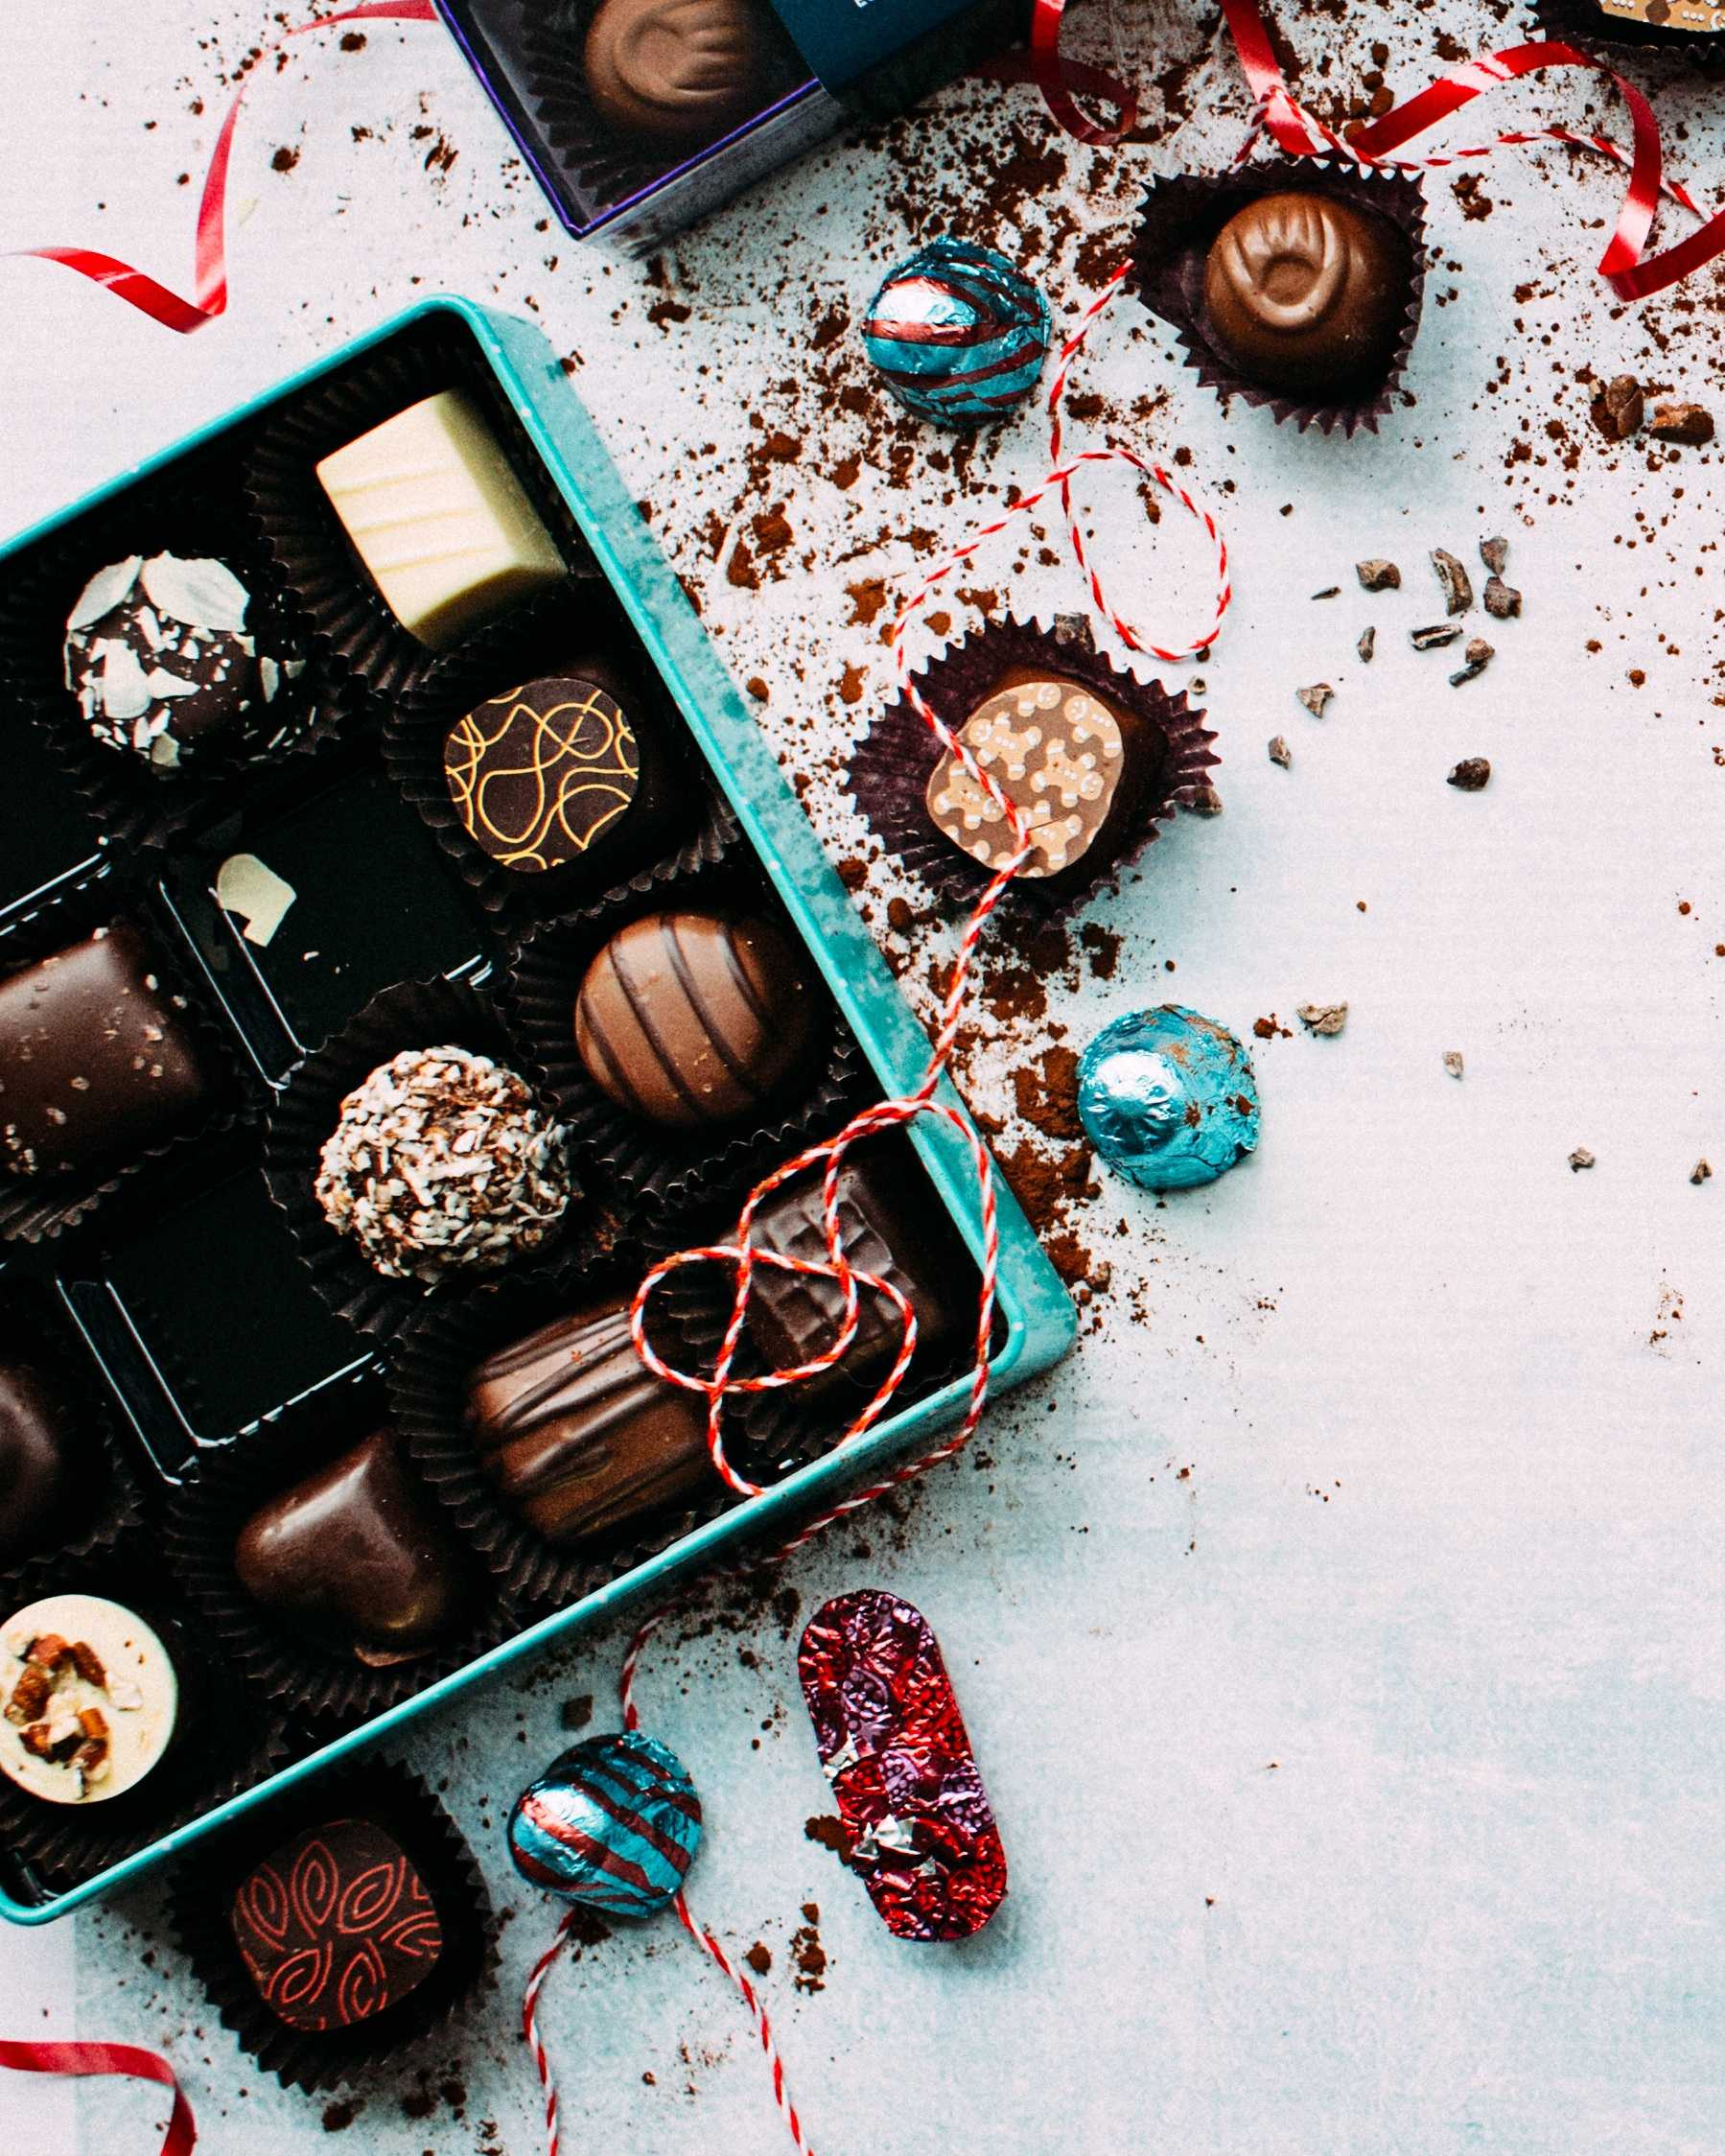 christmas_praline_unsplash.jpg